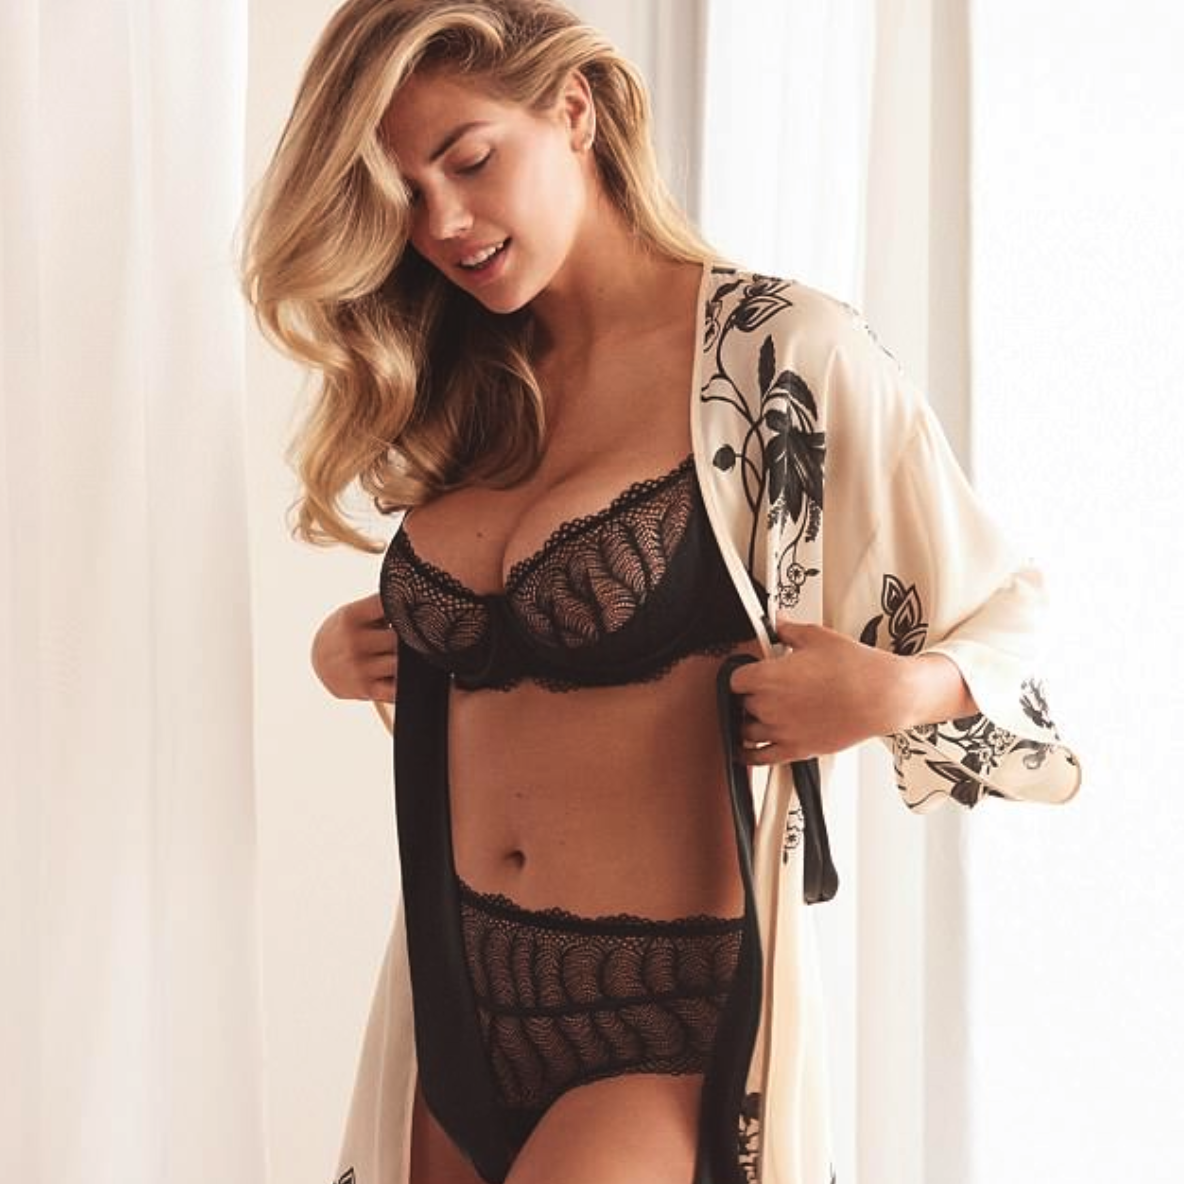 Kate Upton Displays Her Ample Assets in an Array of Lingerie